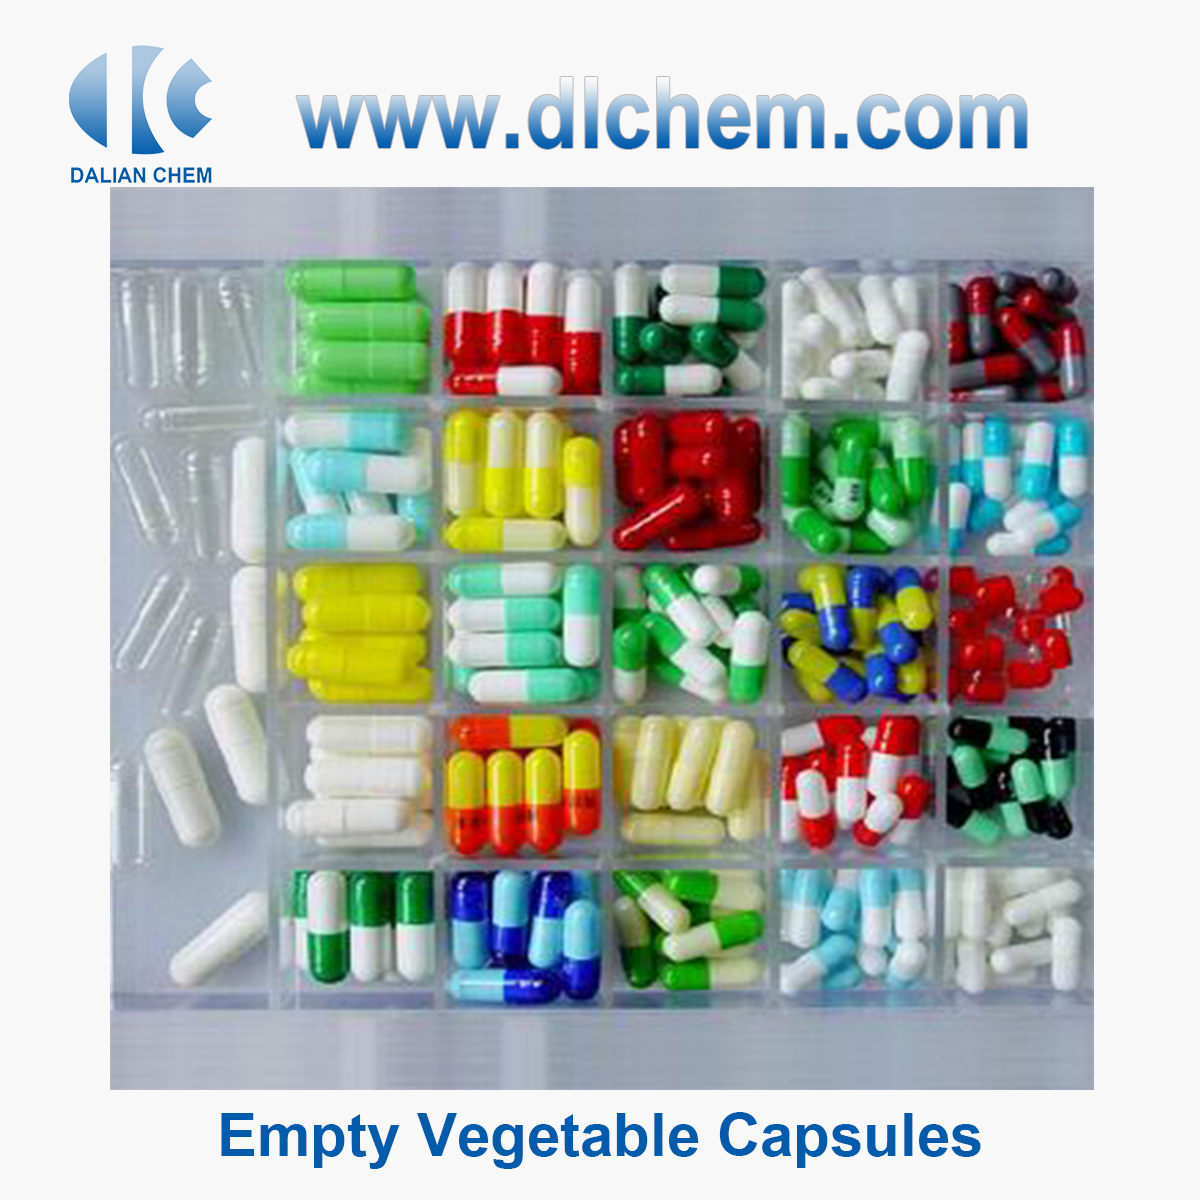 Empty Vegetable Capsules